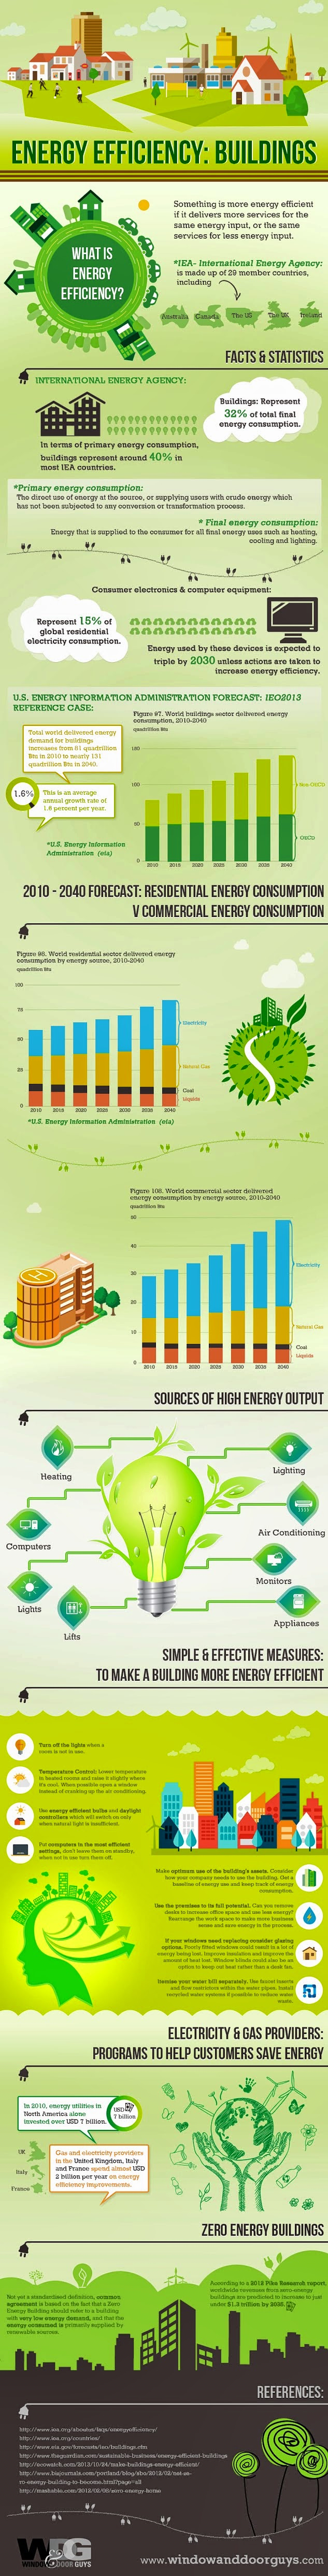 Image of Energy Efficiency: Buildings Info-graphic